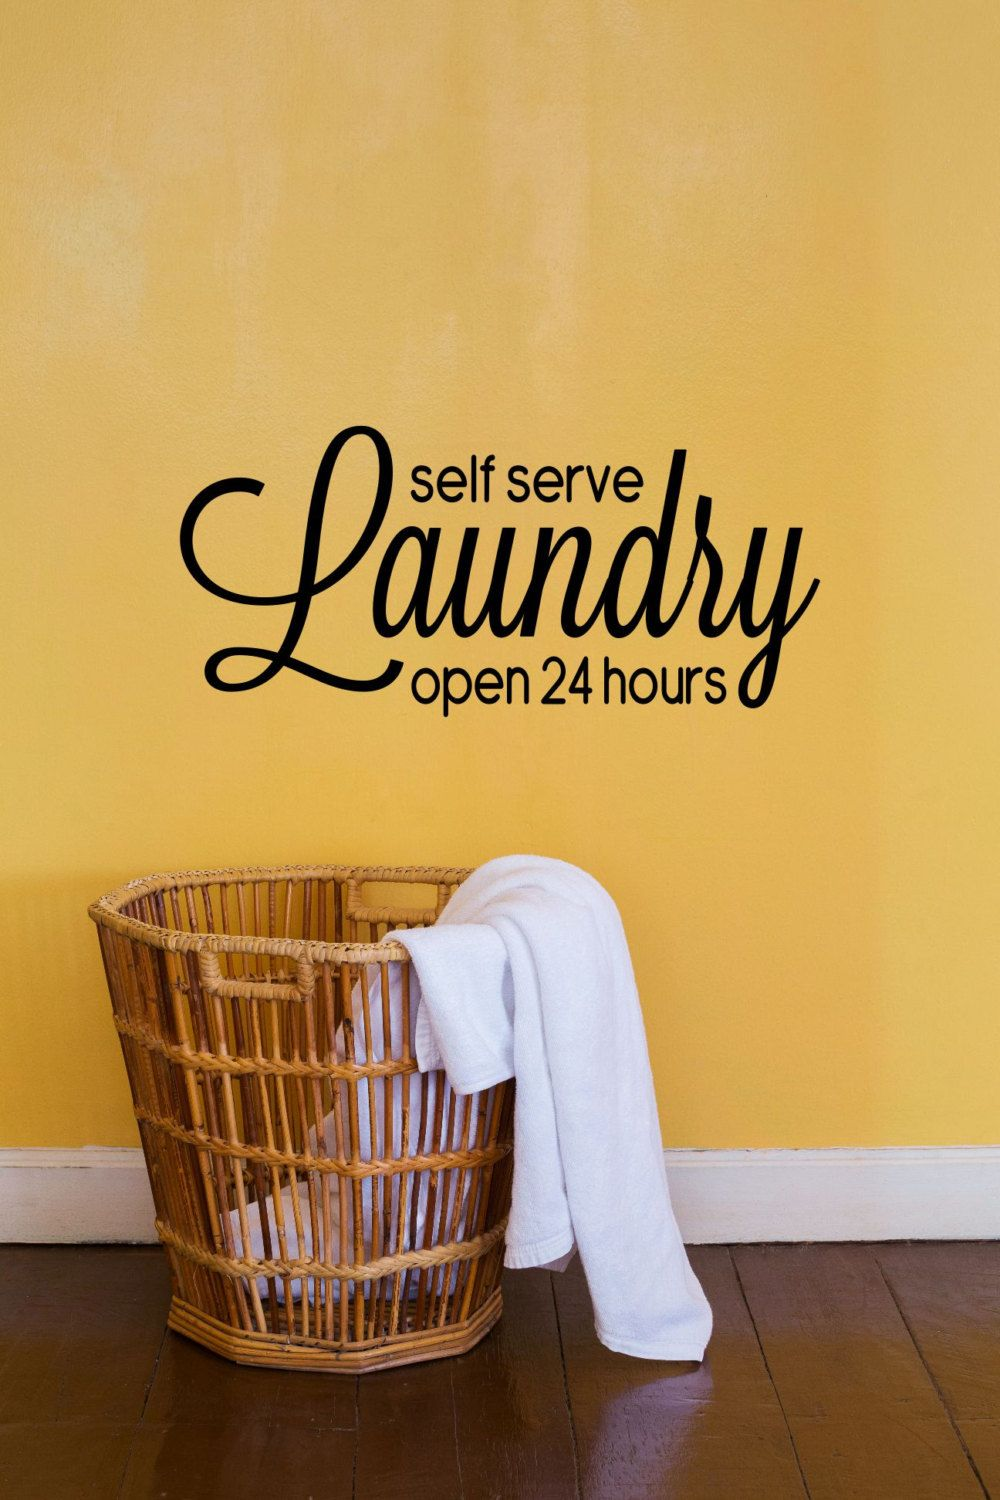 Self serve laundry open 24 hours vinyl decal laundry wall decal self serve laundry open 24 hours vinyl decal laundry wall decal laundry vinyl decal amipublicfo Image collections